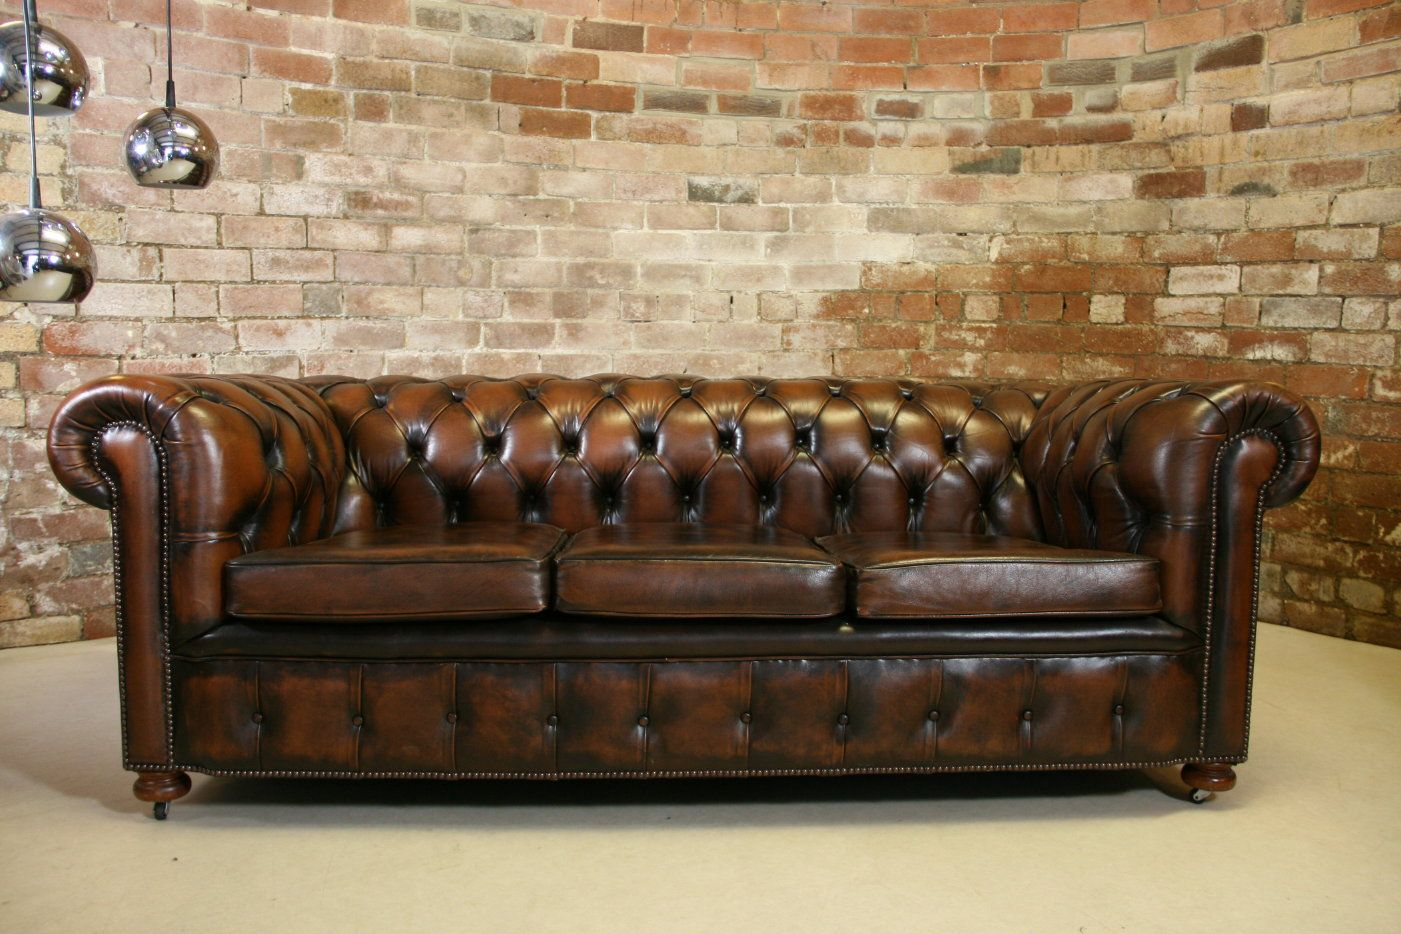 Vintage chesterfield antique brown leather 3 seater sofa - Sillones retro vintage ...